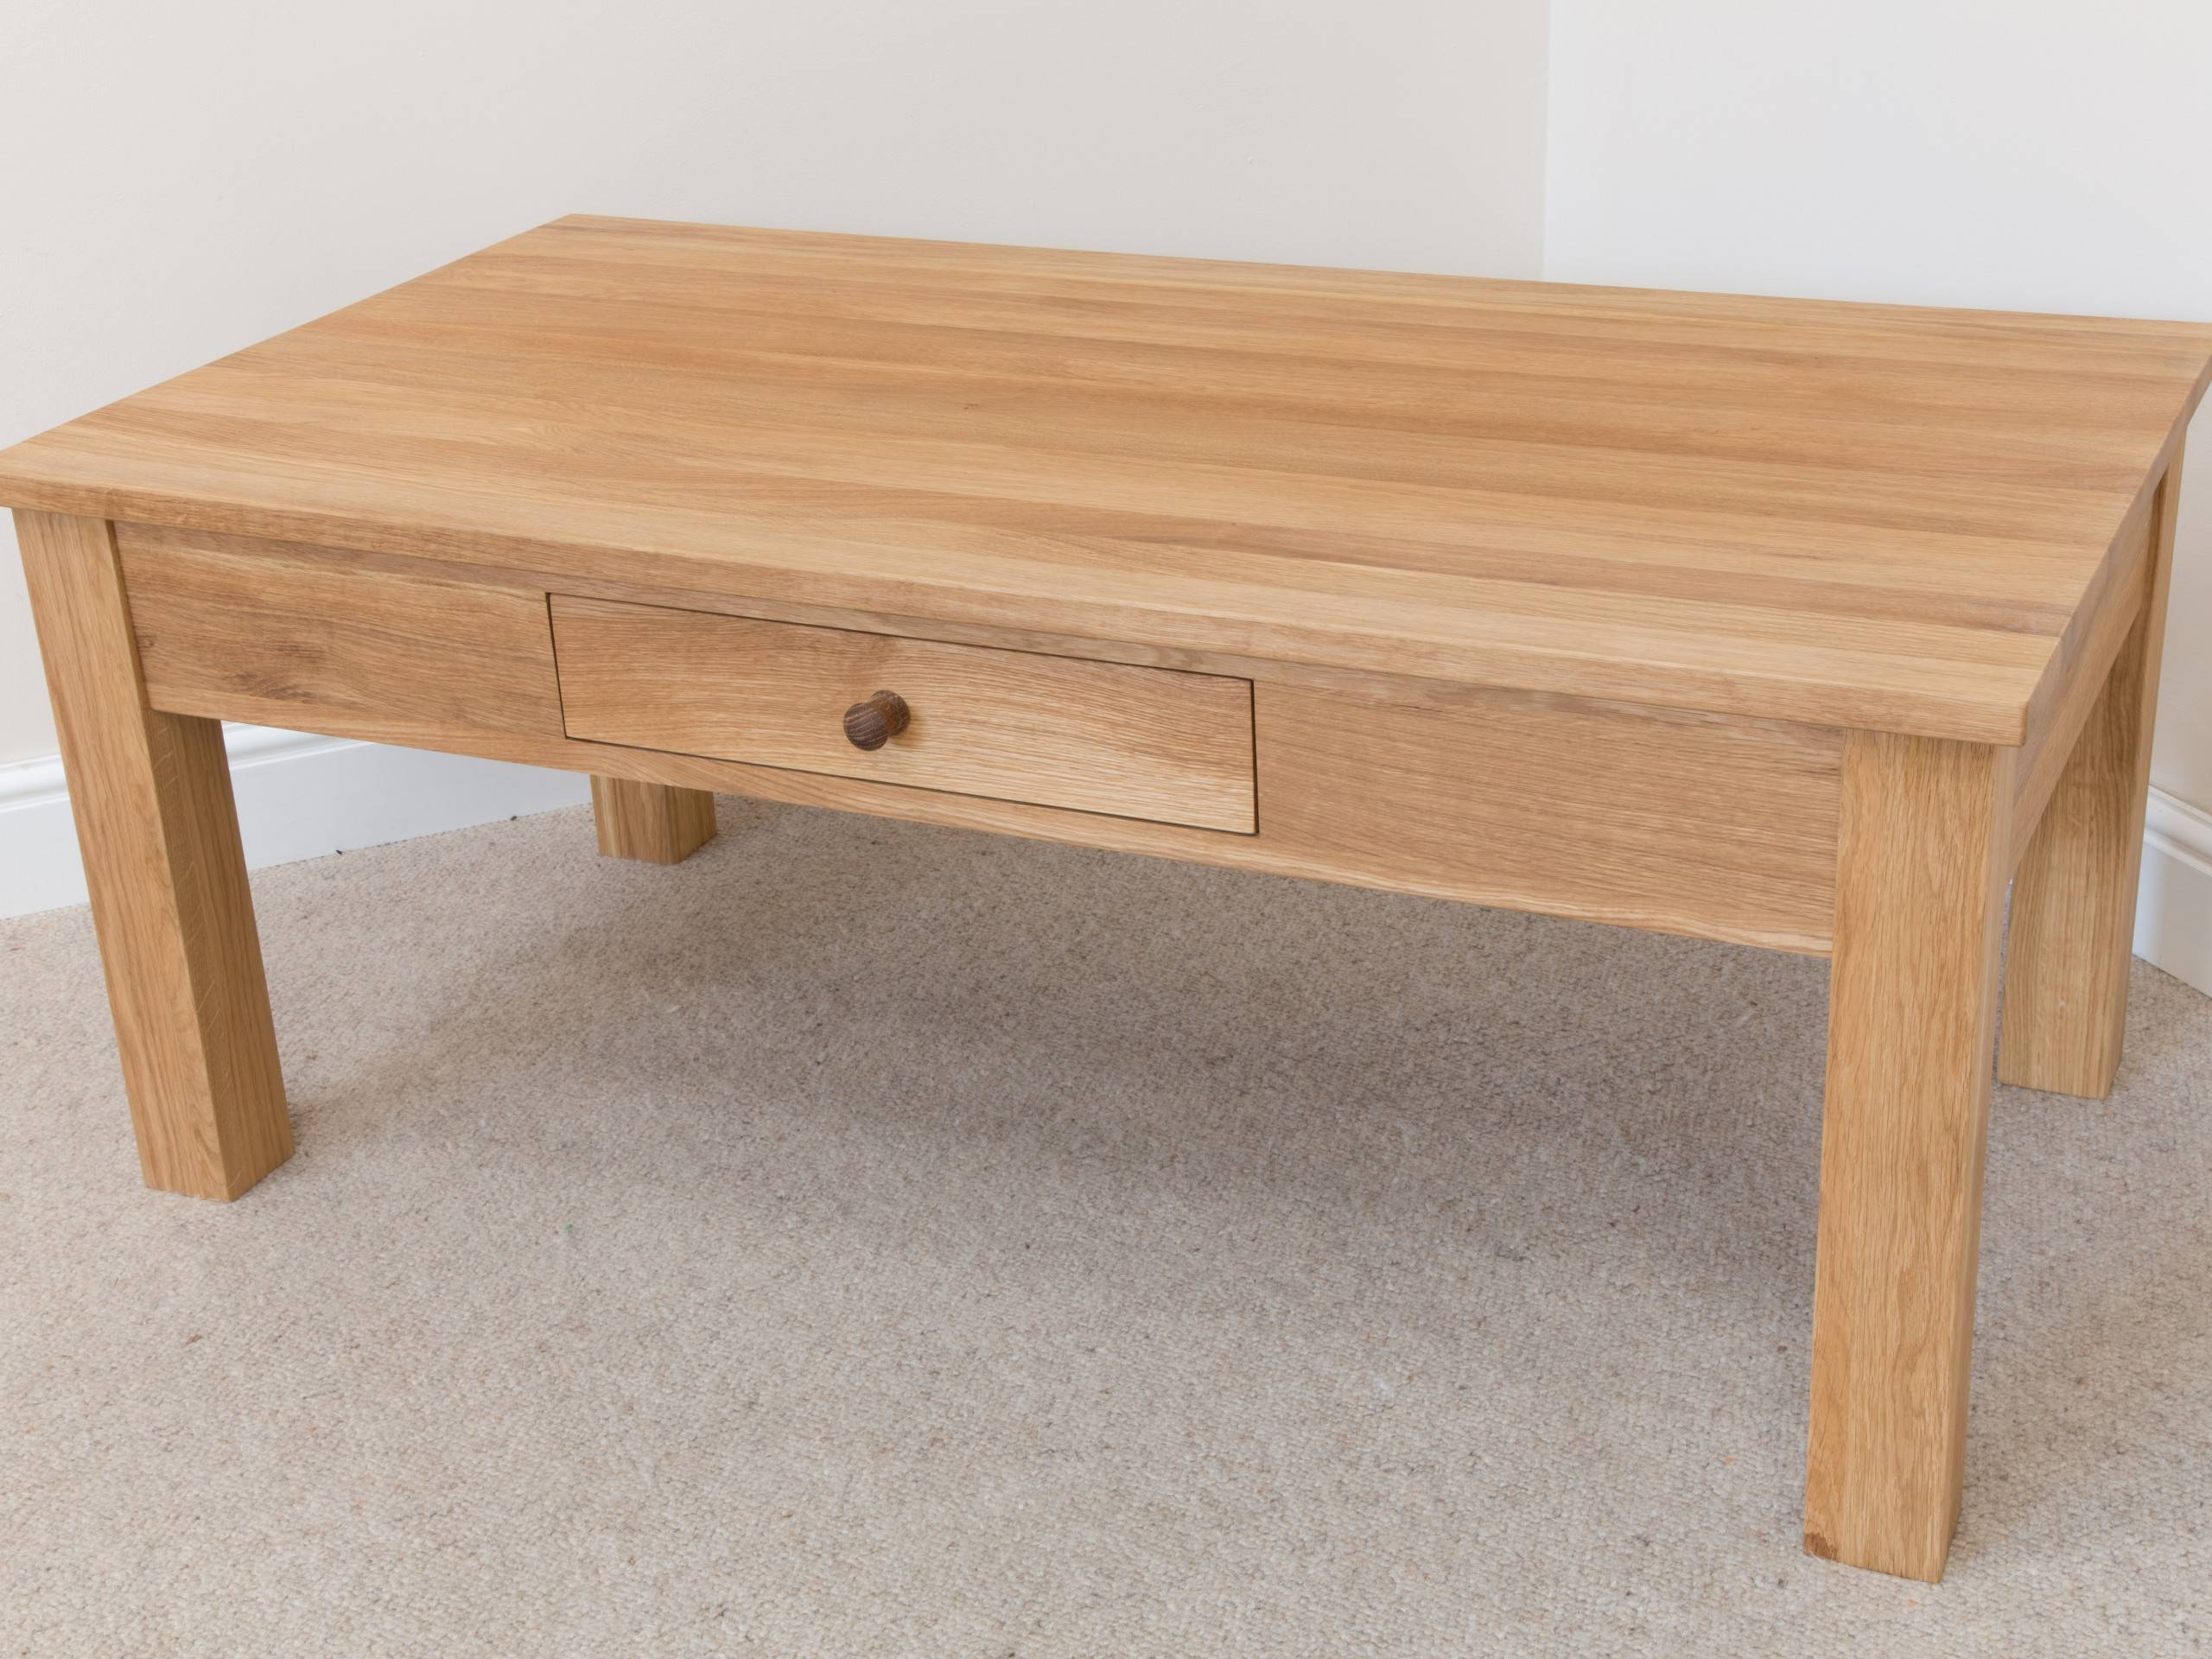 Baltic Large Solid Oak Coffee Table With Drawer intended for Large Oak Coffee Tables (Image 1 of 15)